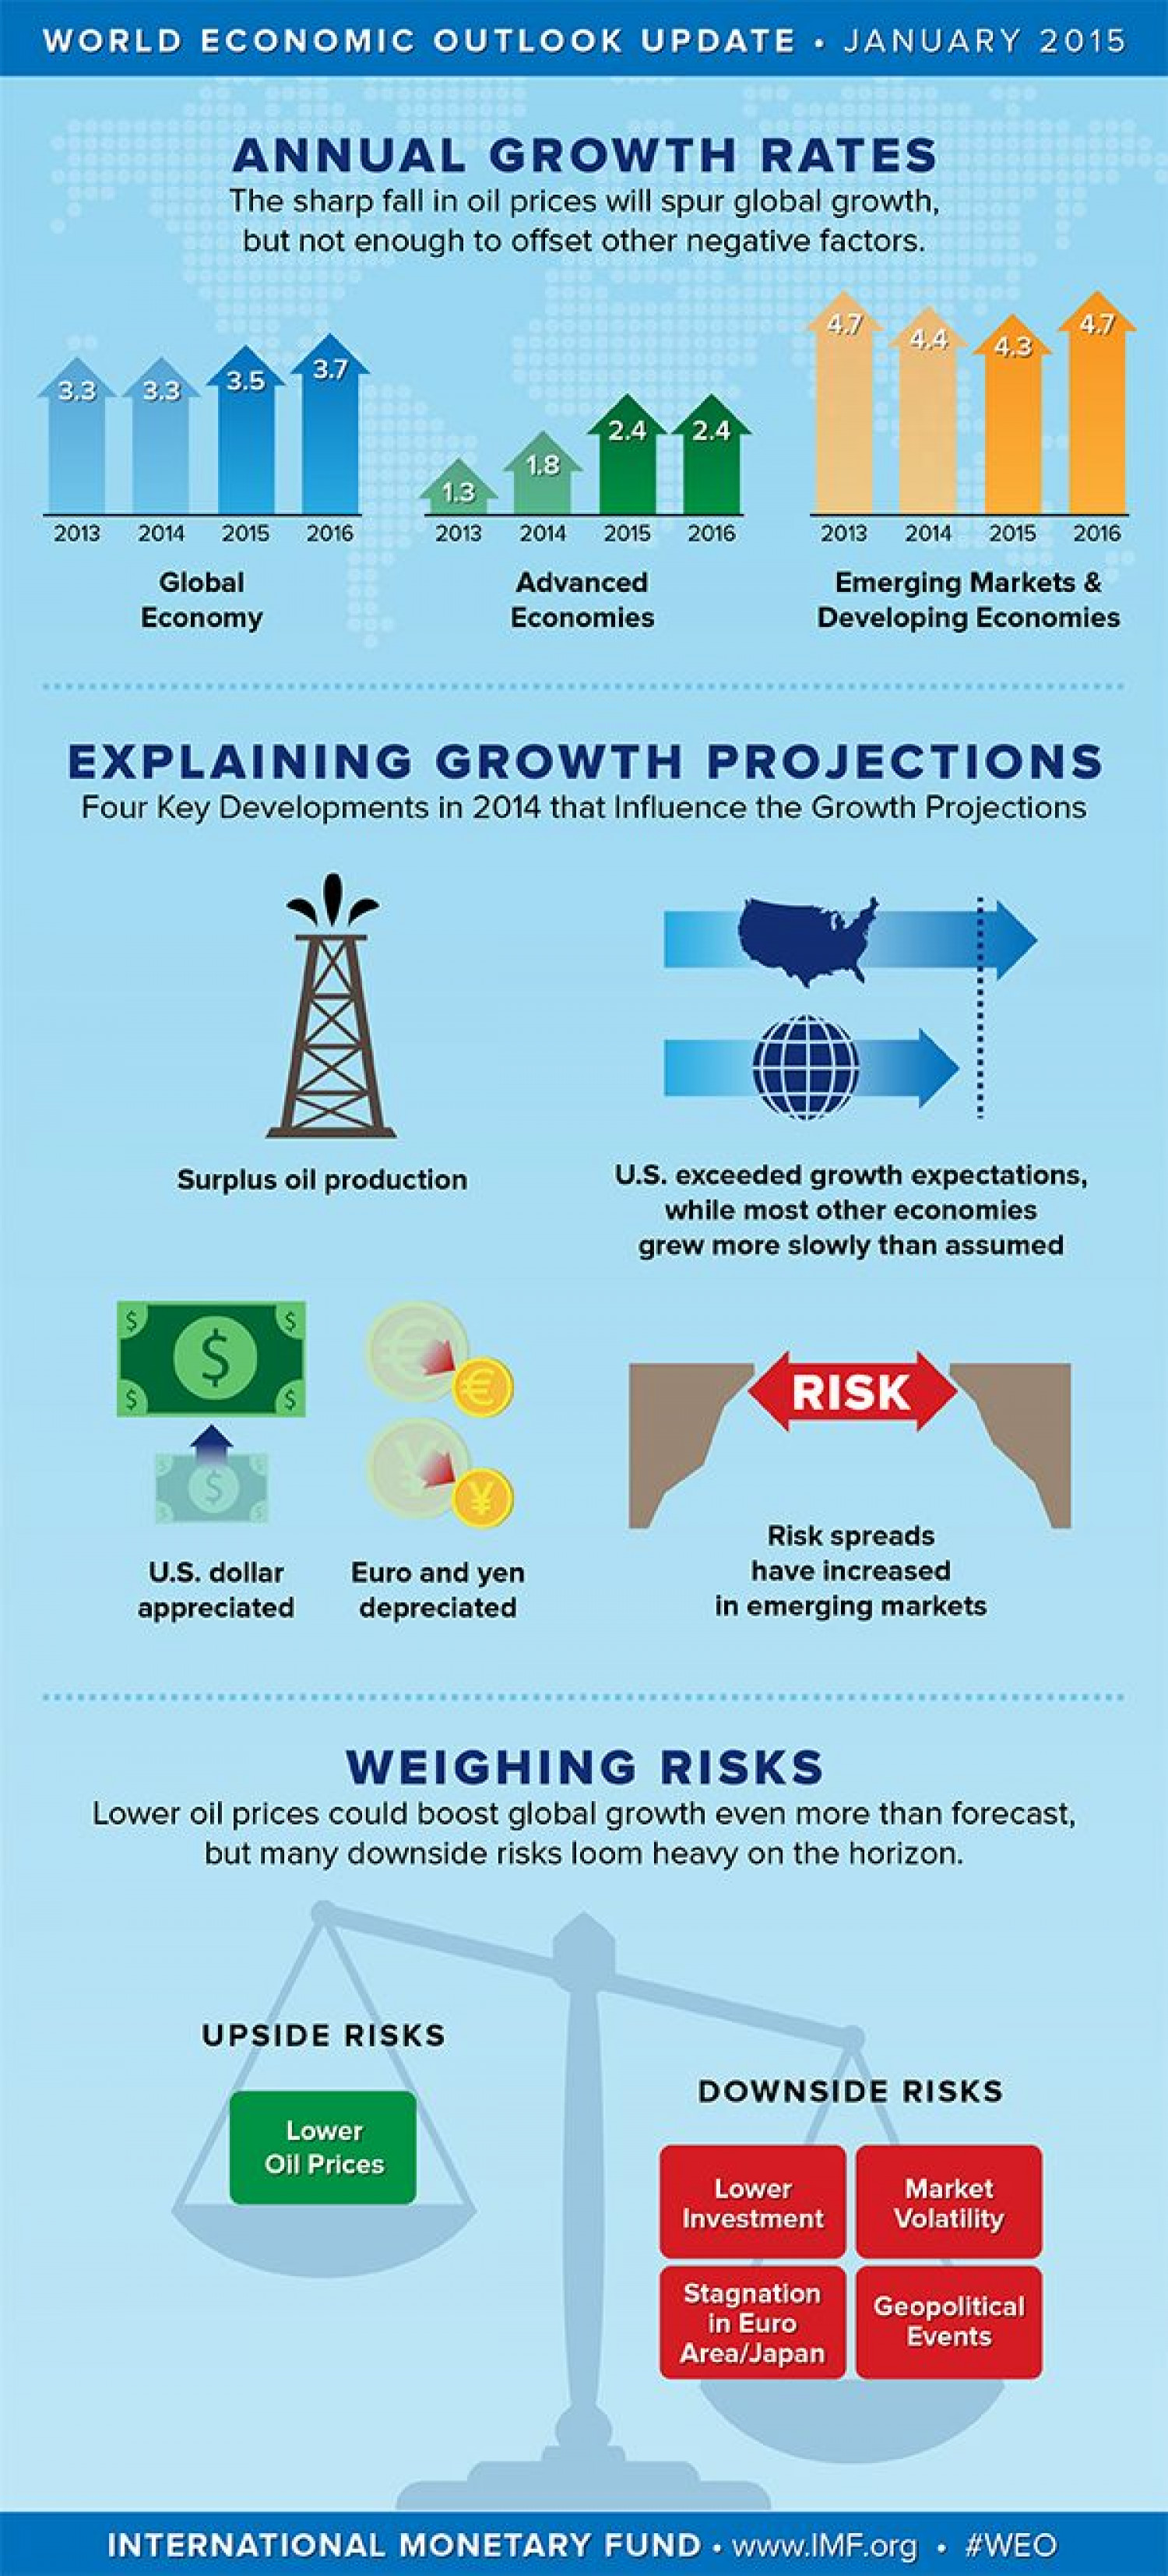 WEO Infographic (With images) | Global ... Infographic